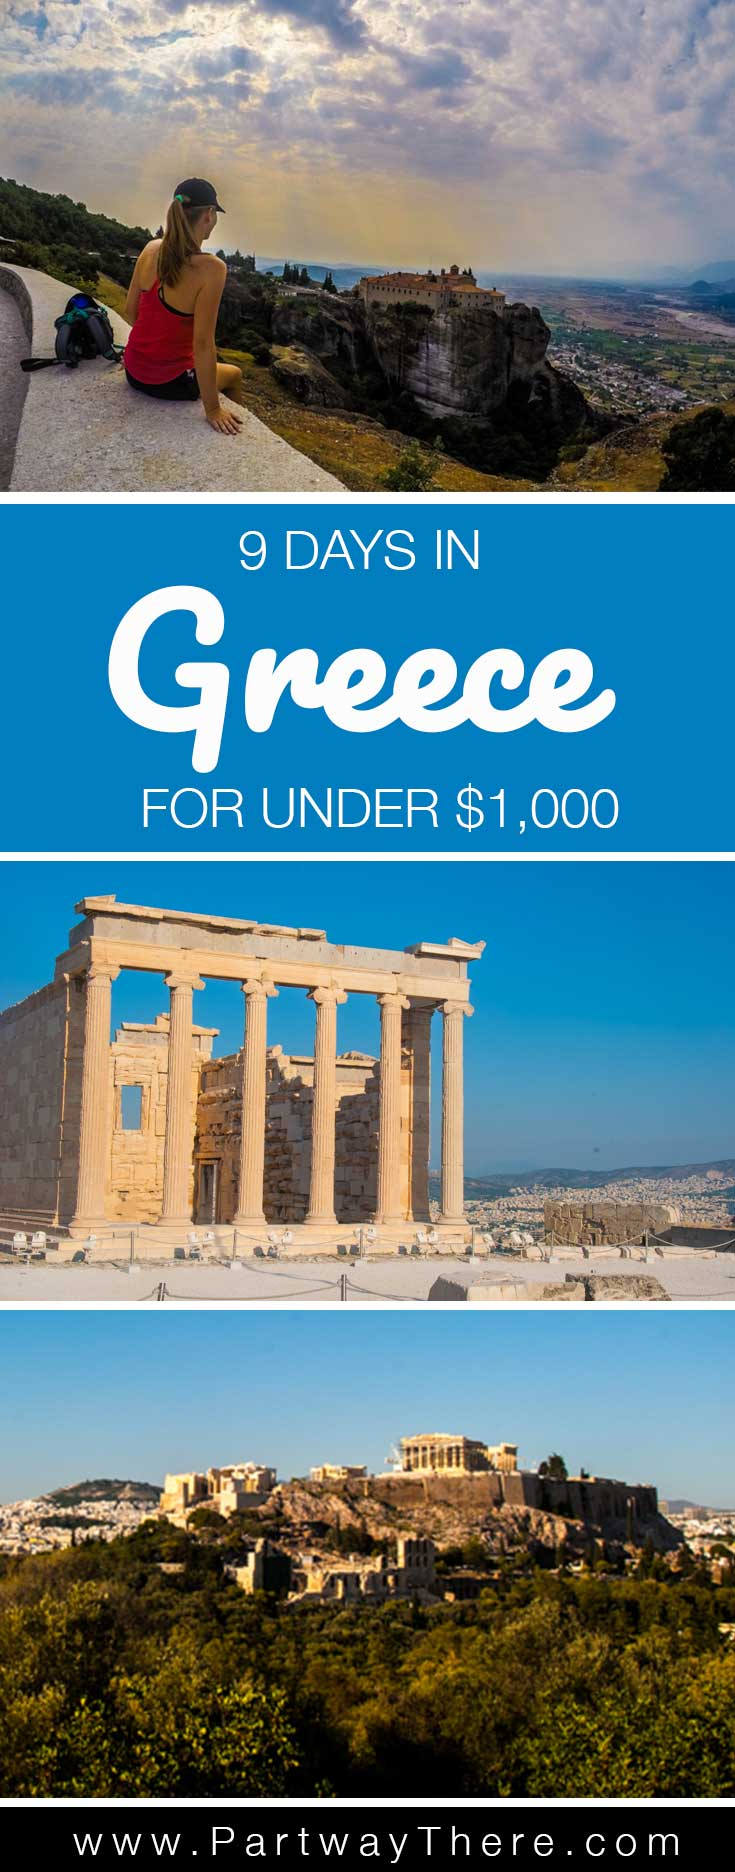 How I spent 9 days in Greece for under $1,000